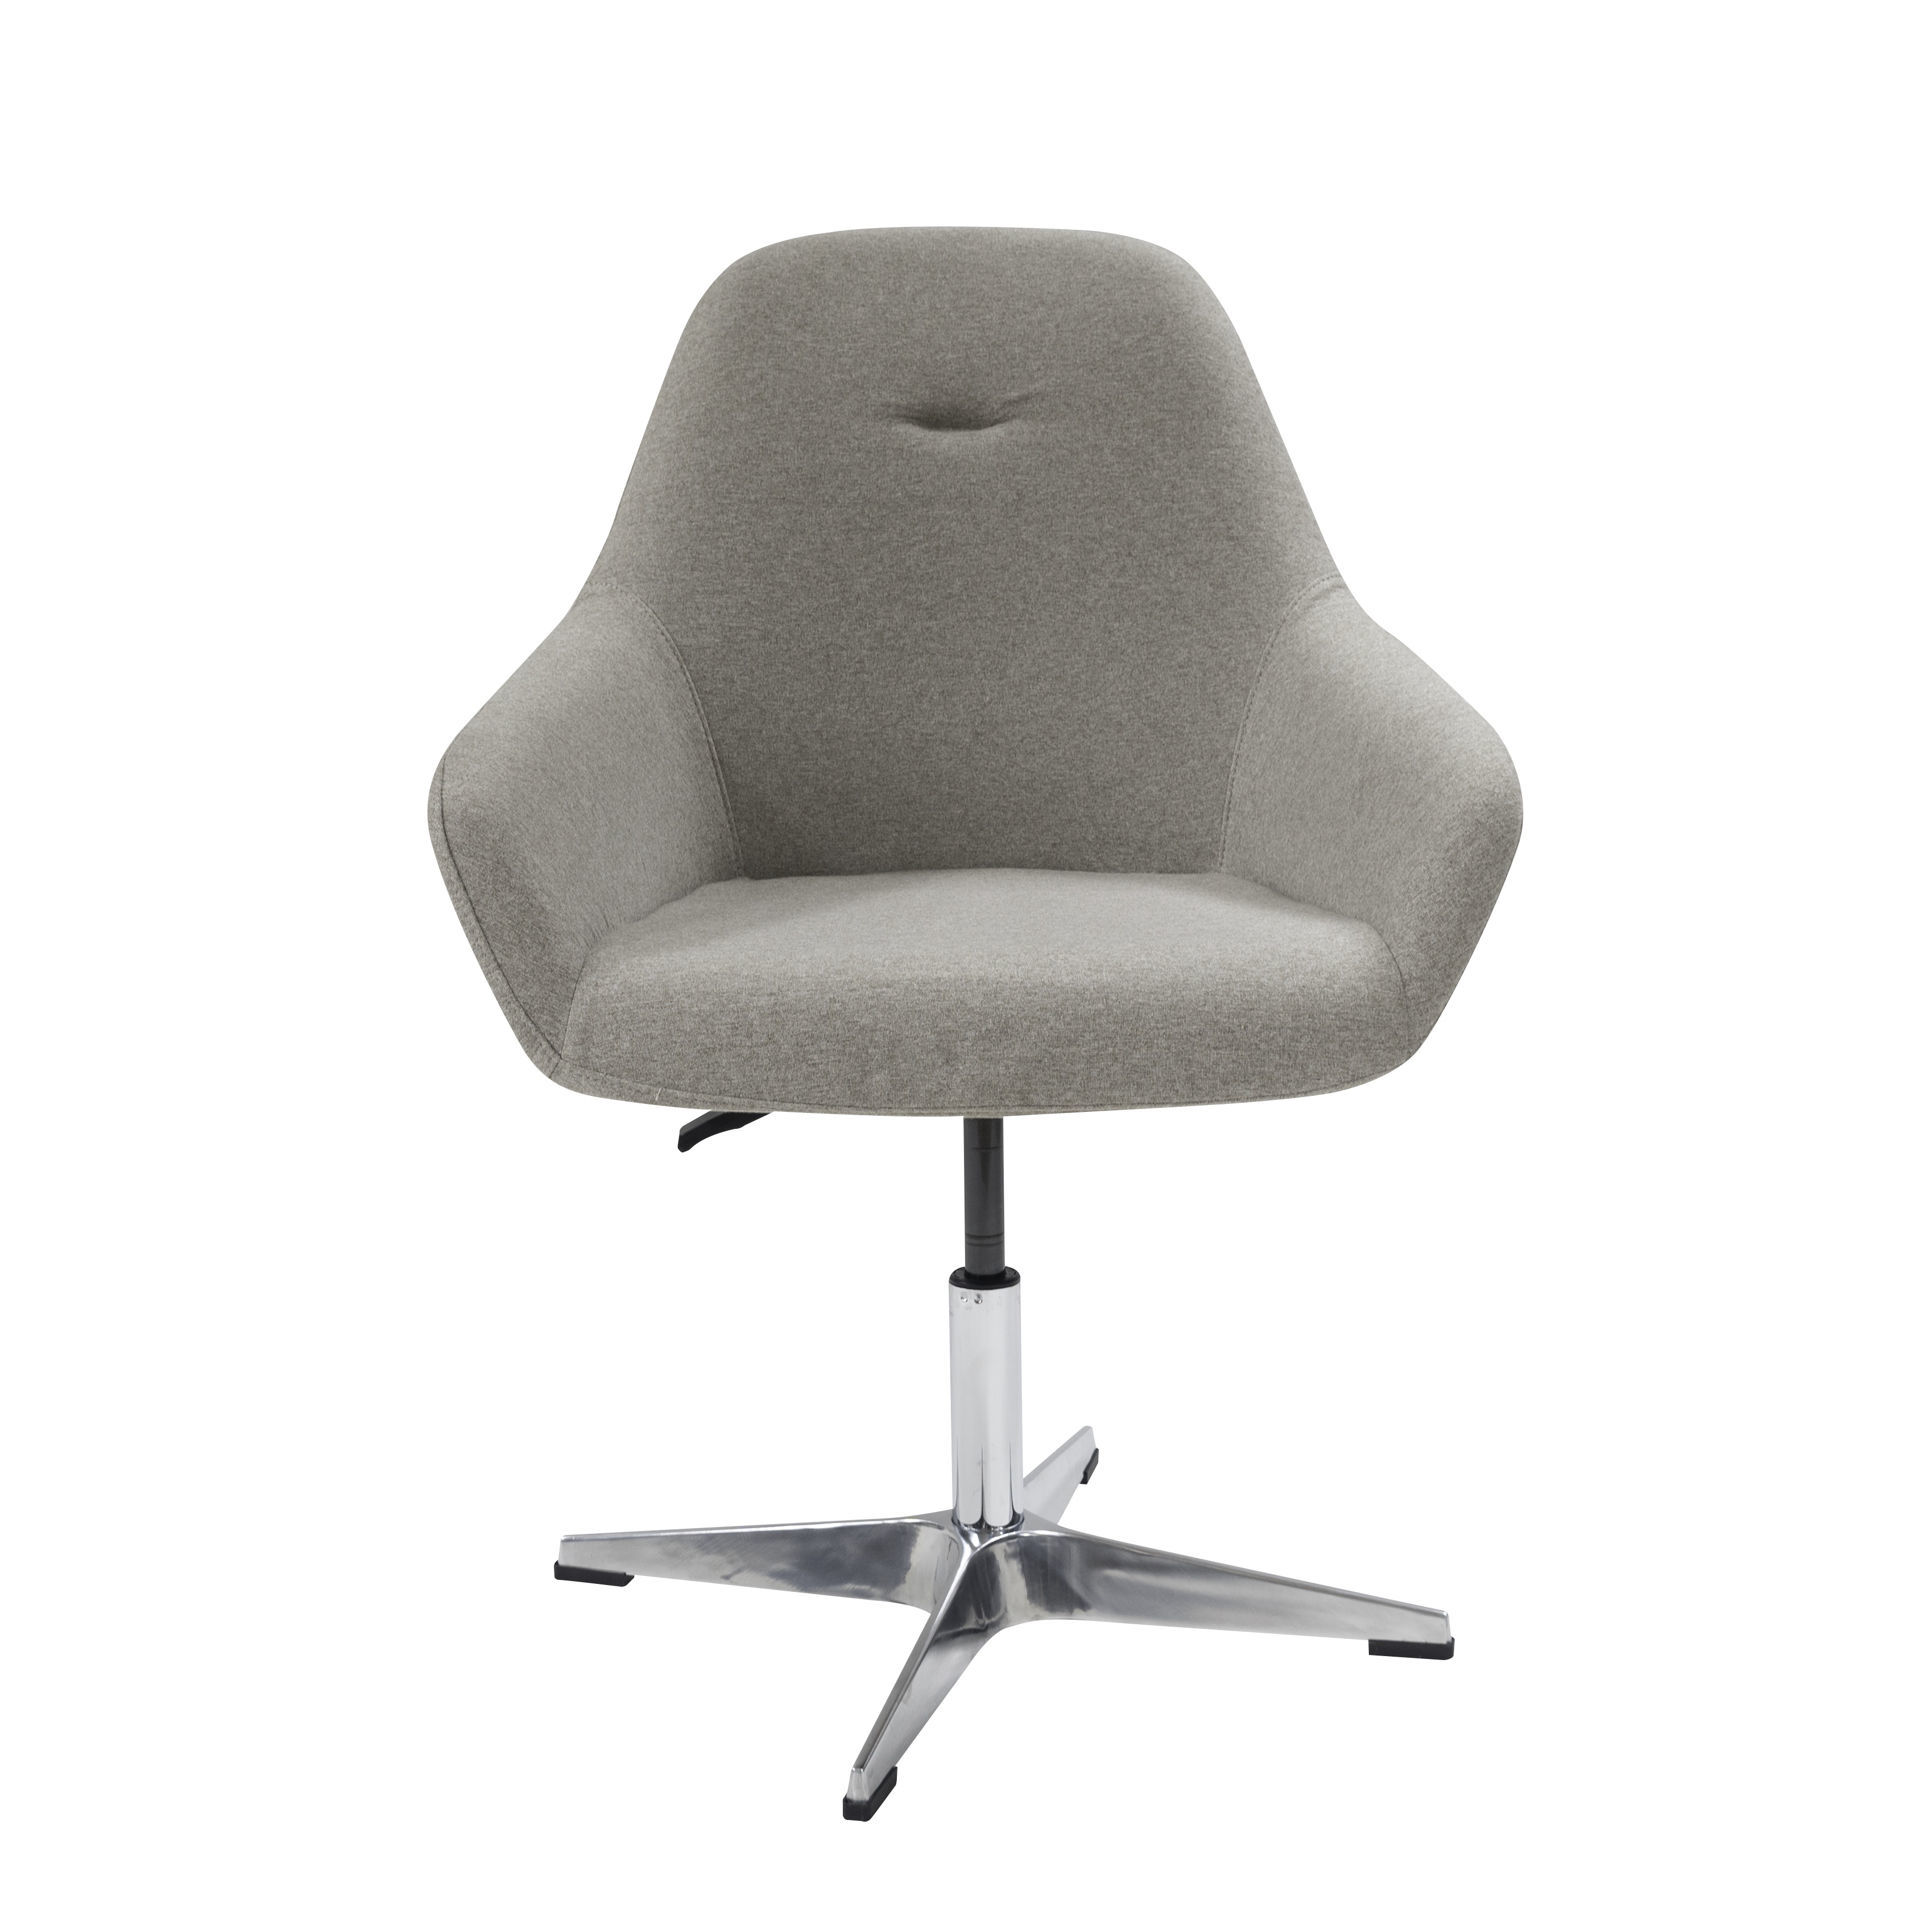 Picture of AA-542GY Image Bucket Fabric Chair on Pedestal Base - Grey